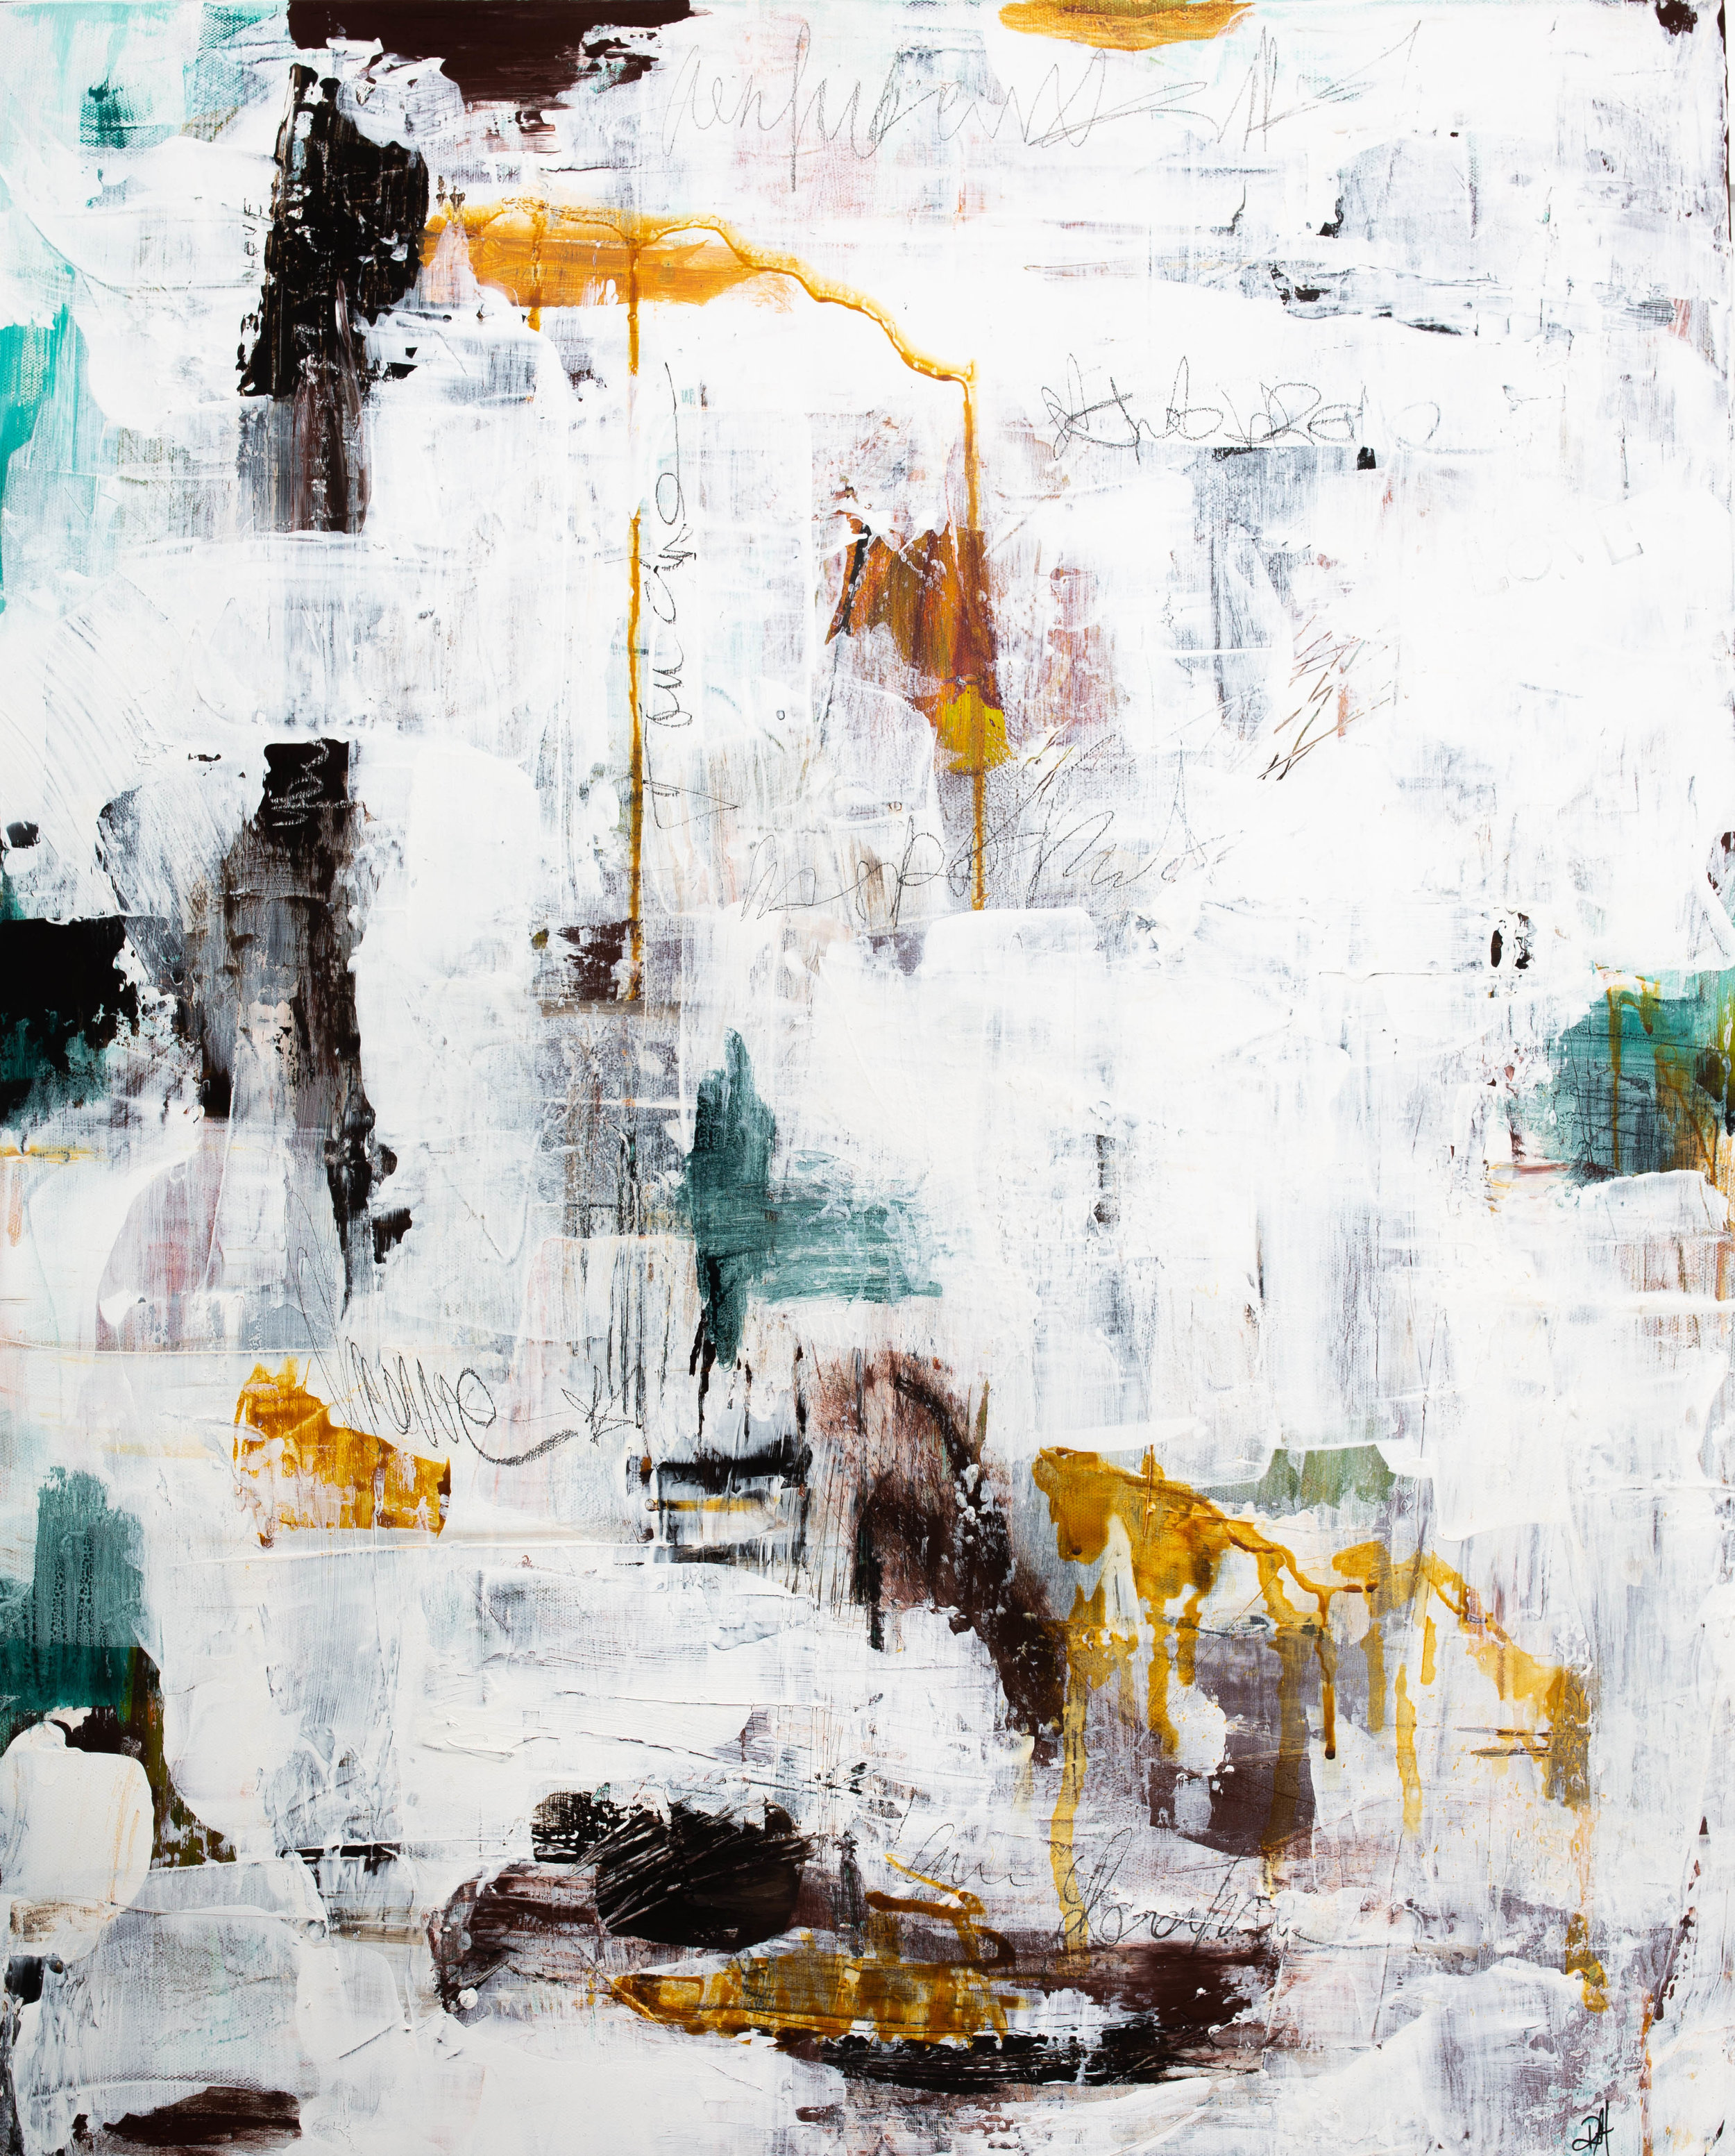 UNTOLD STORIES  60 X 76 X 3CM MIXED MEDIA ON CANVAS  $400   CLICK HERE FOR ENQUIRY